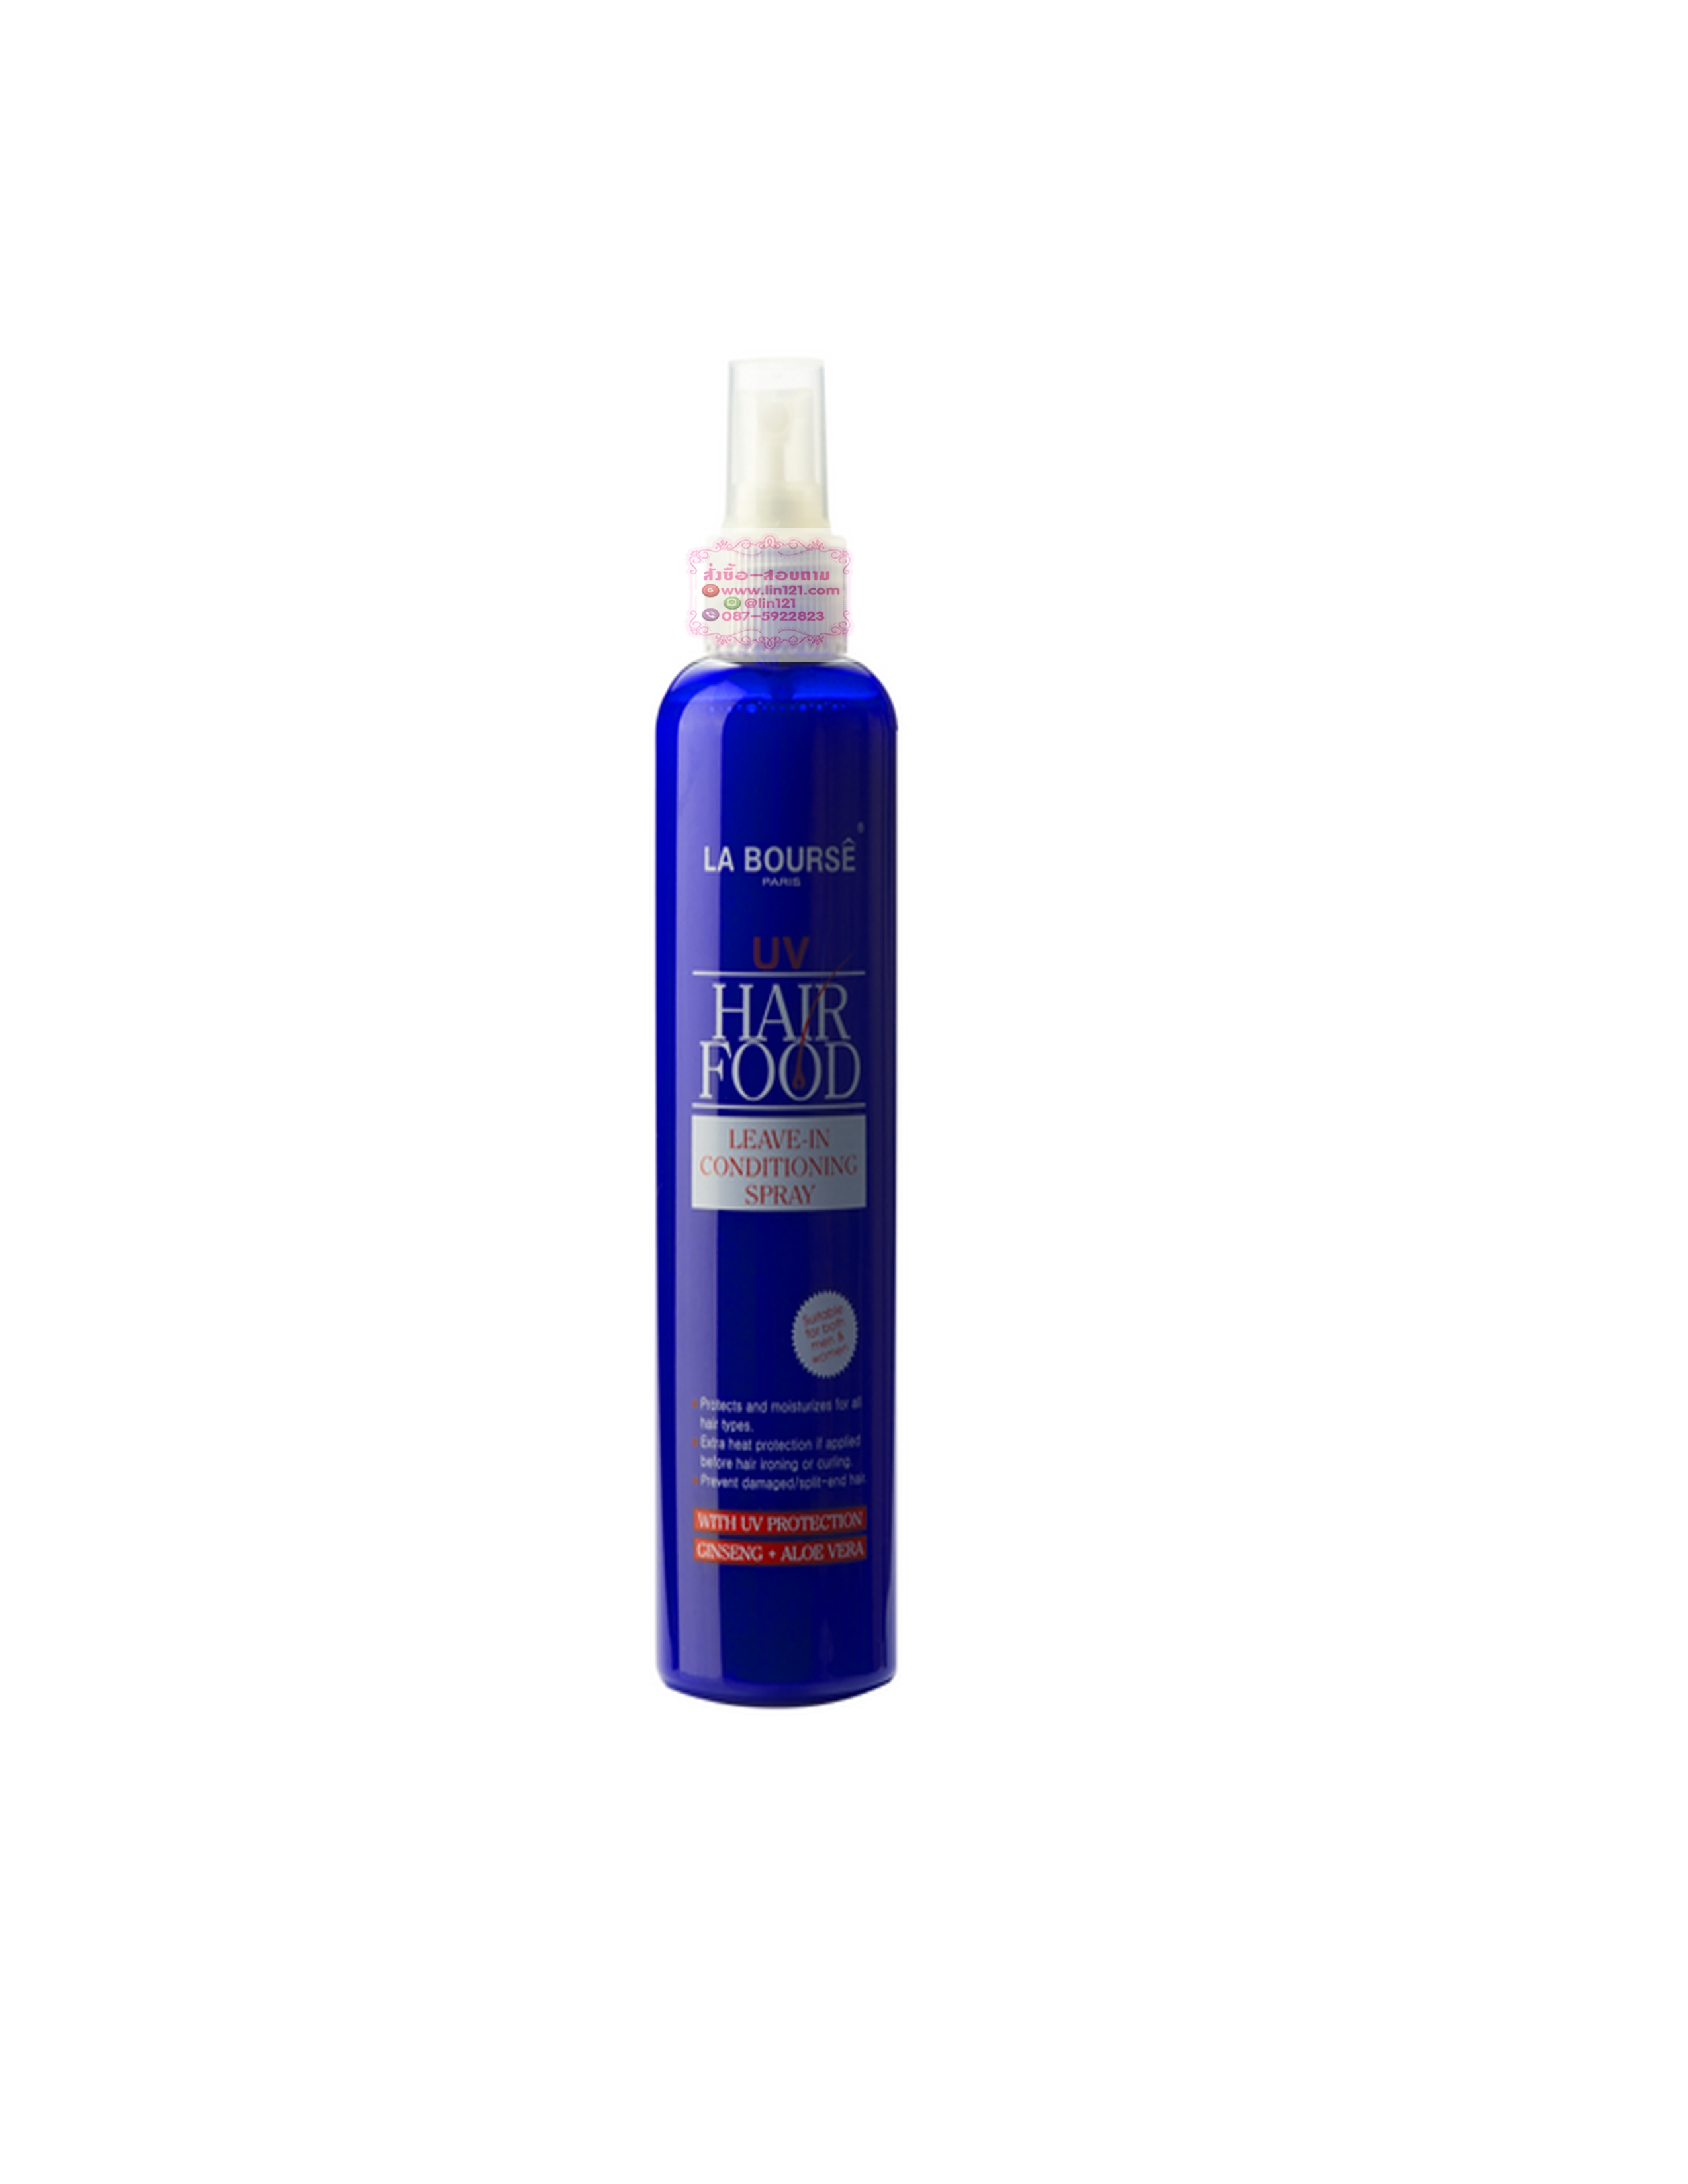 UV HAIR FOOD LEAVE-IN CONDITIONER SPRAY